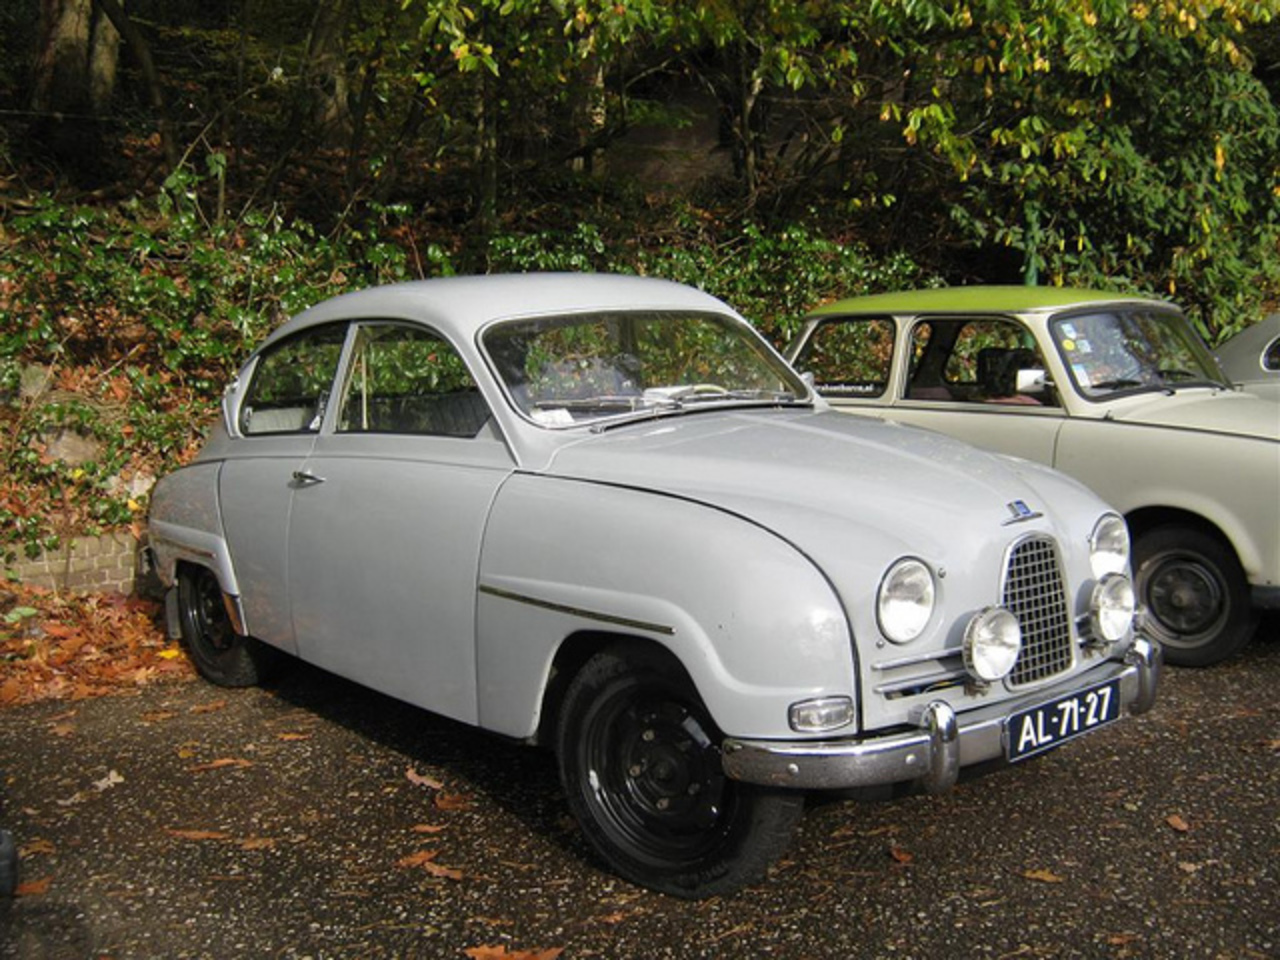 SAAB 96 de luxe 1962 / 2004 Apeldoorn | Flickr - Photo Sharing!